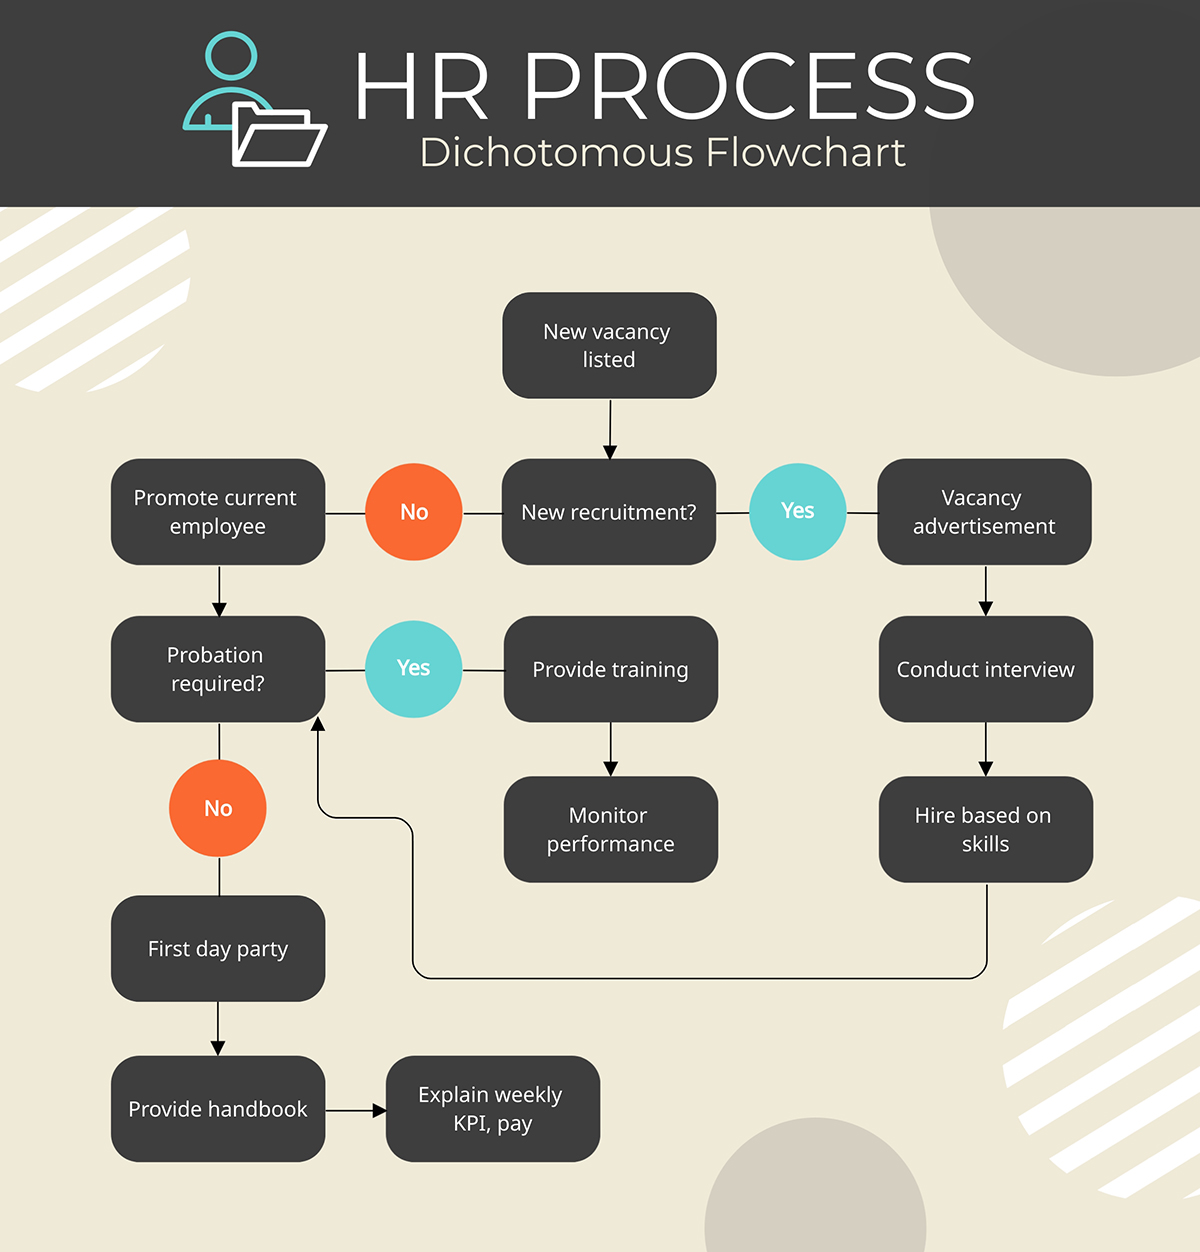 An HR process flowchart template available to customize in Visme.